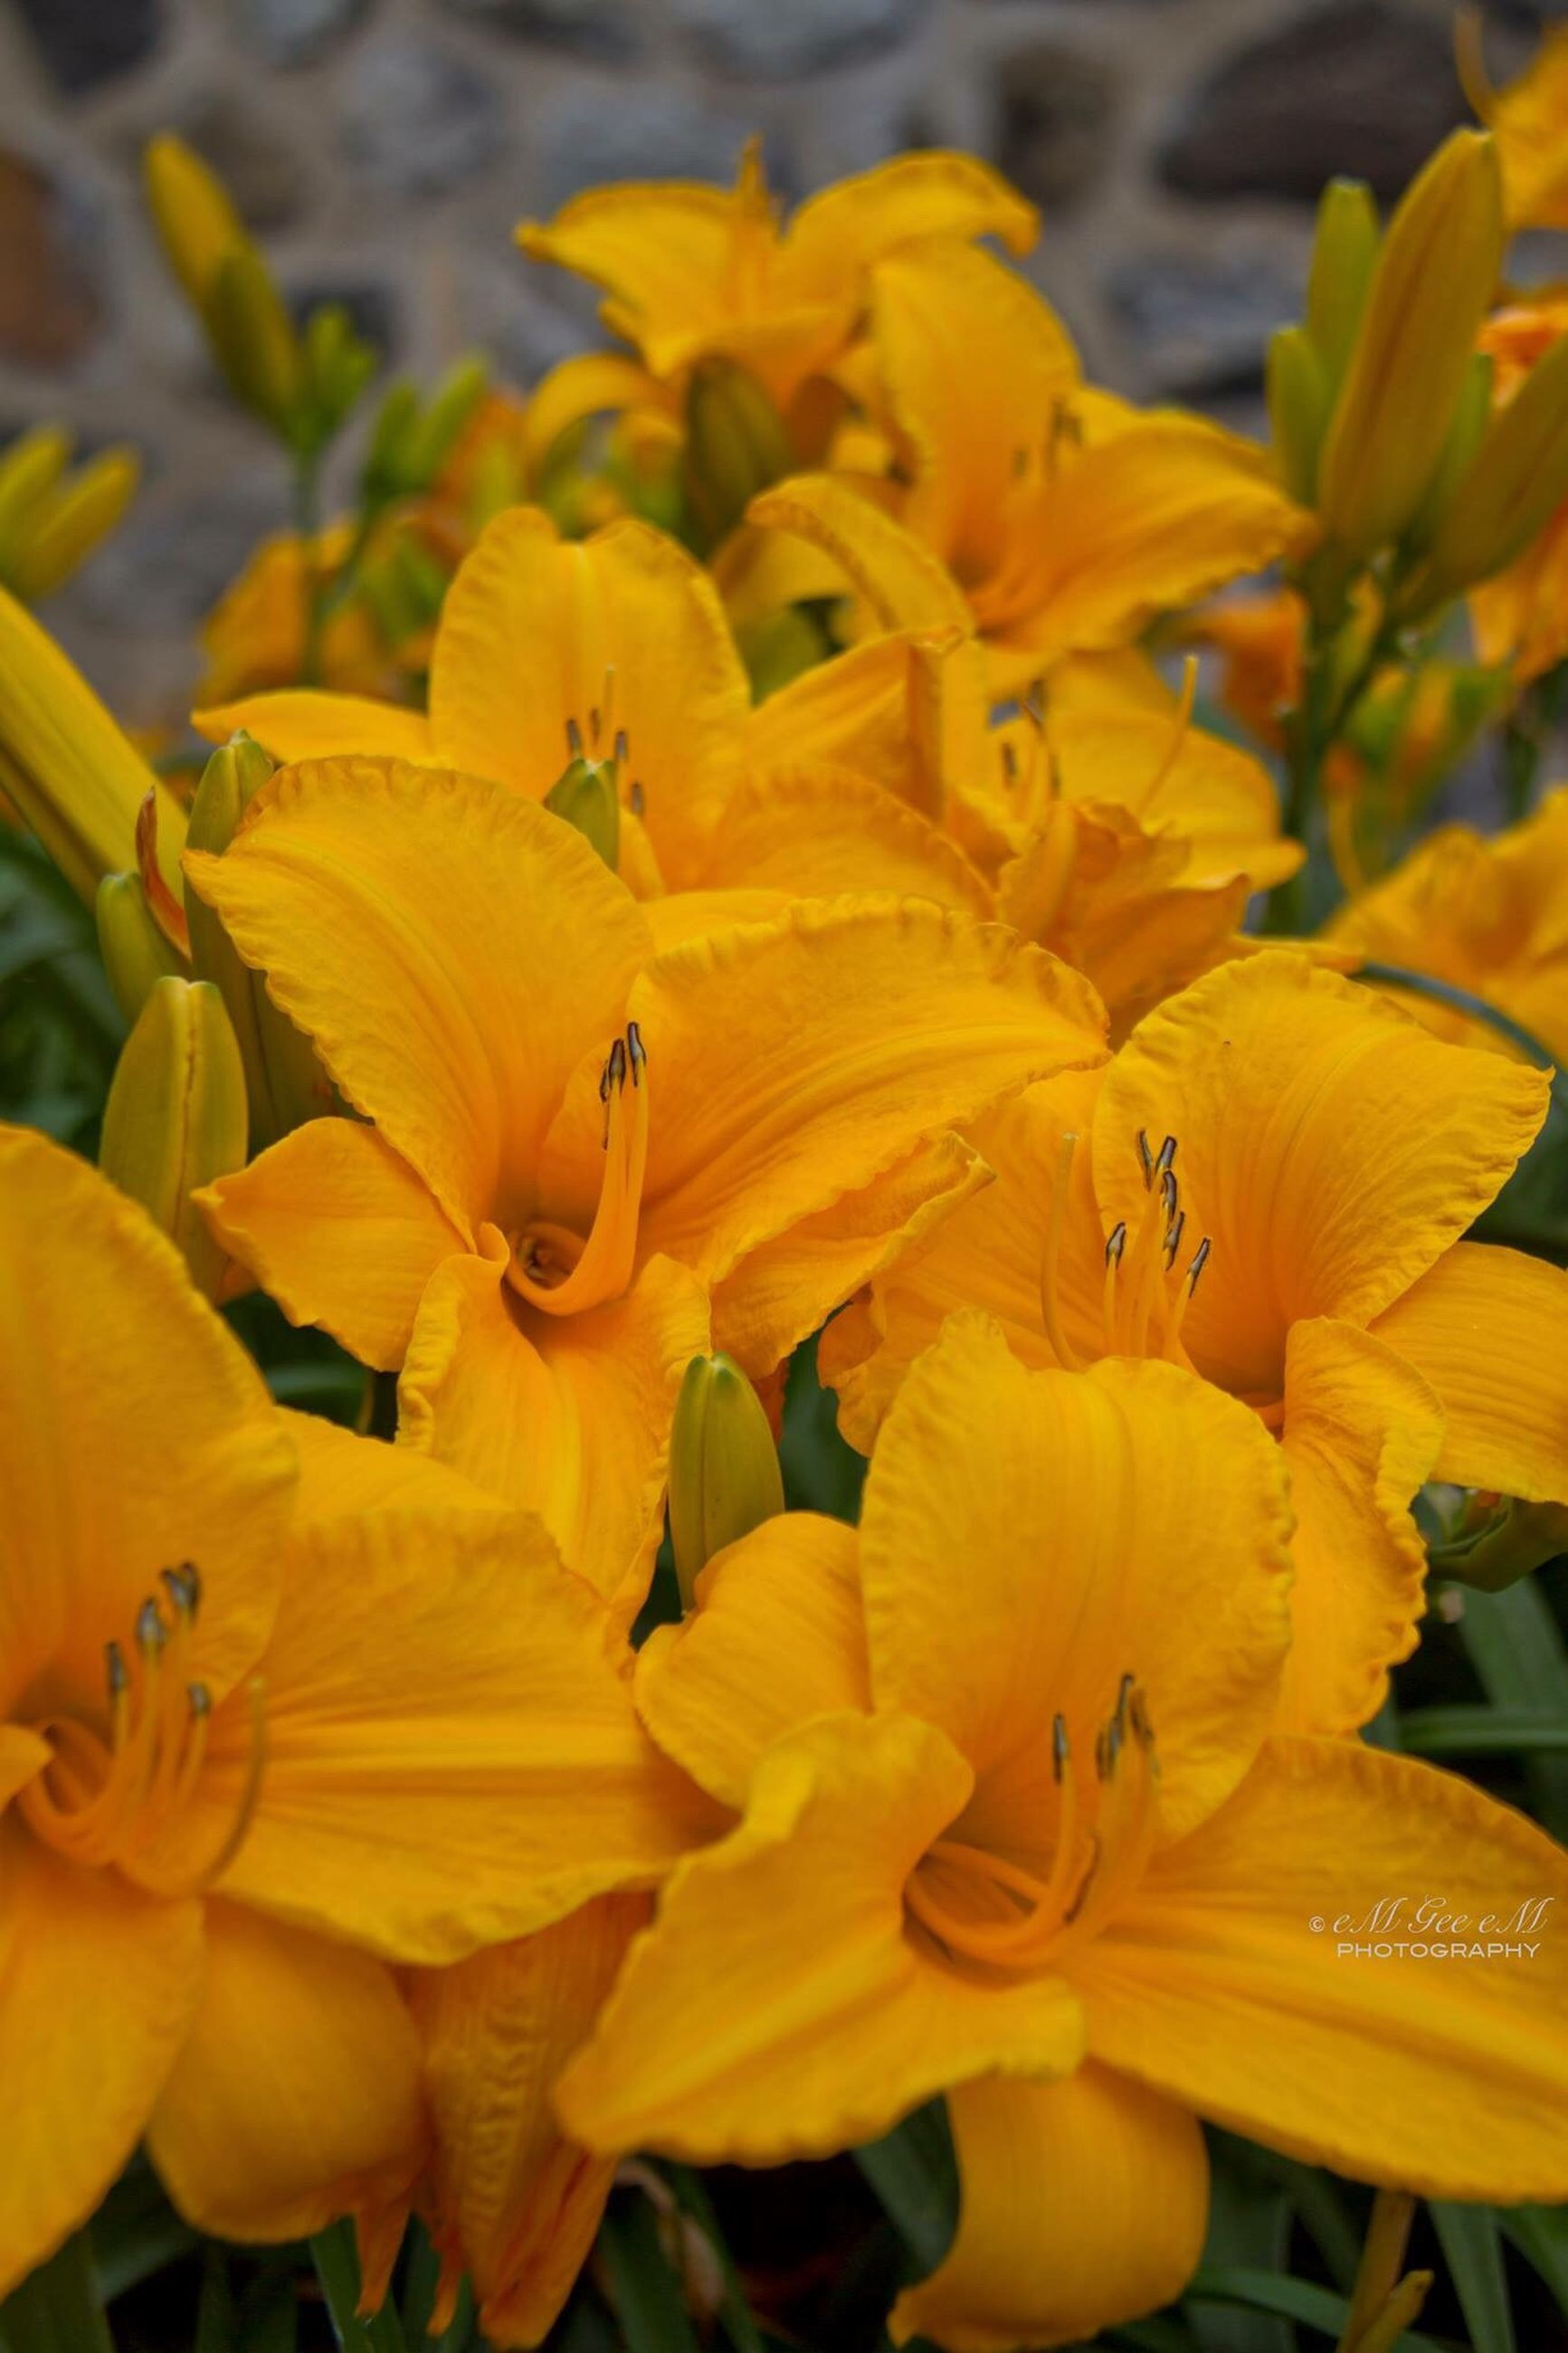 flower, fragility, yellow, beauty in nature, growth, nature, petal, freshness, flower head, close-up, plant, blooming, focus on foreground, no people, outdoors, day, day lily